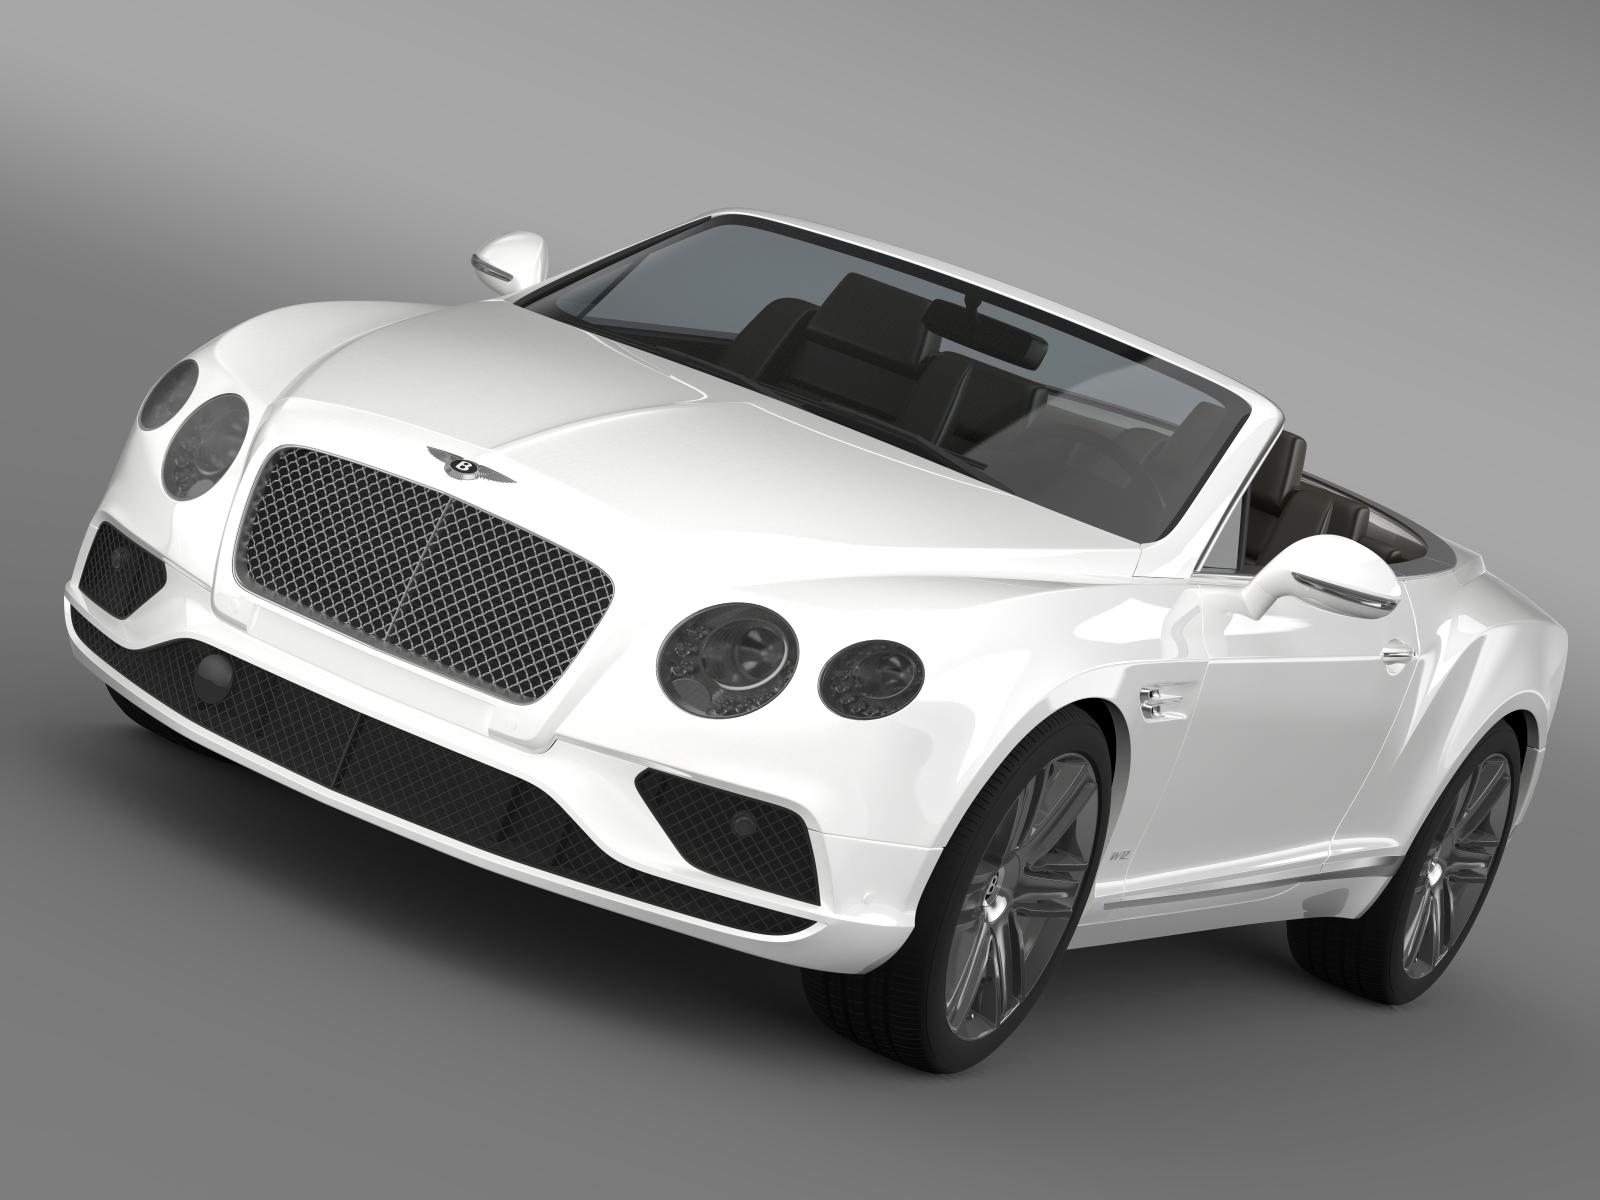 bentley continental gtc 2015 3d model 3ds max fbx c4d lwo ma mb hrc xsi obj 207286